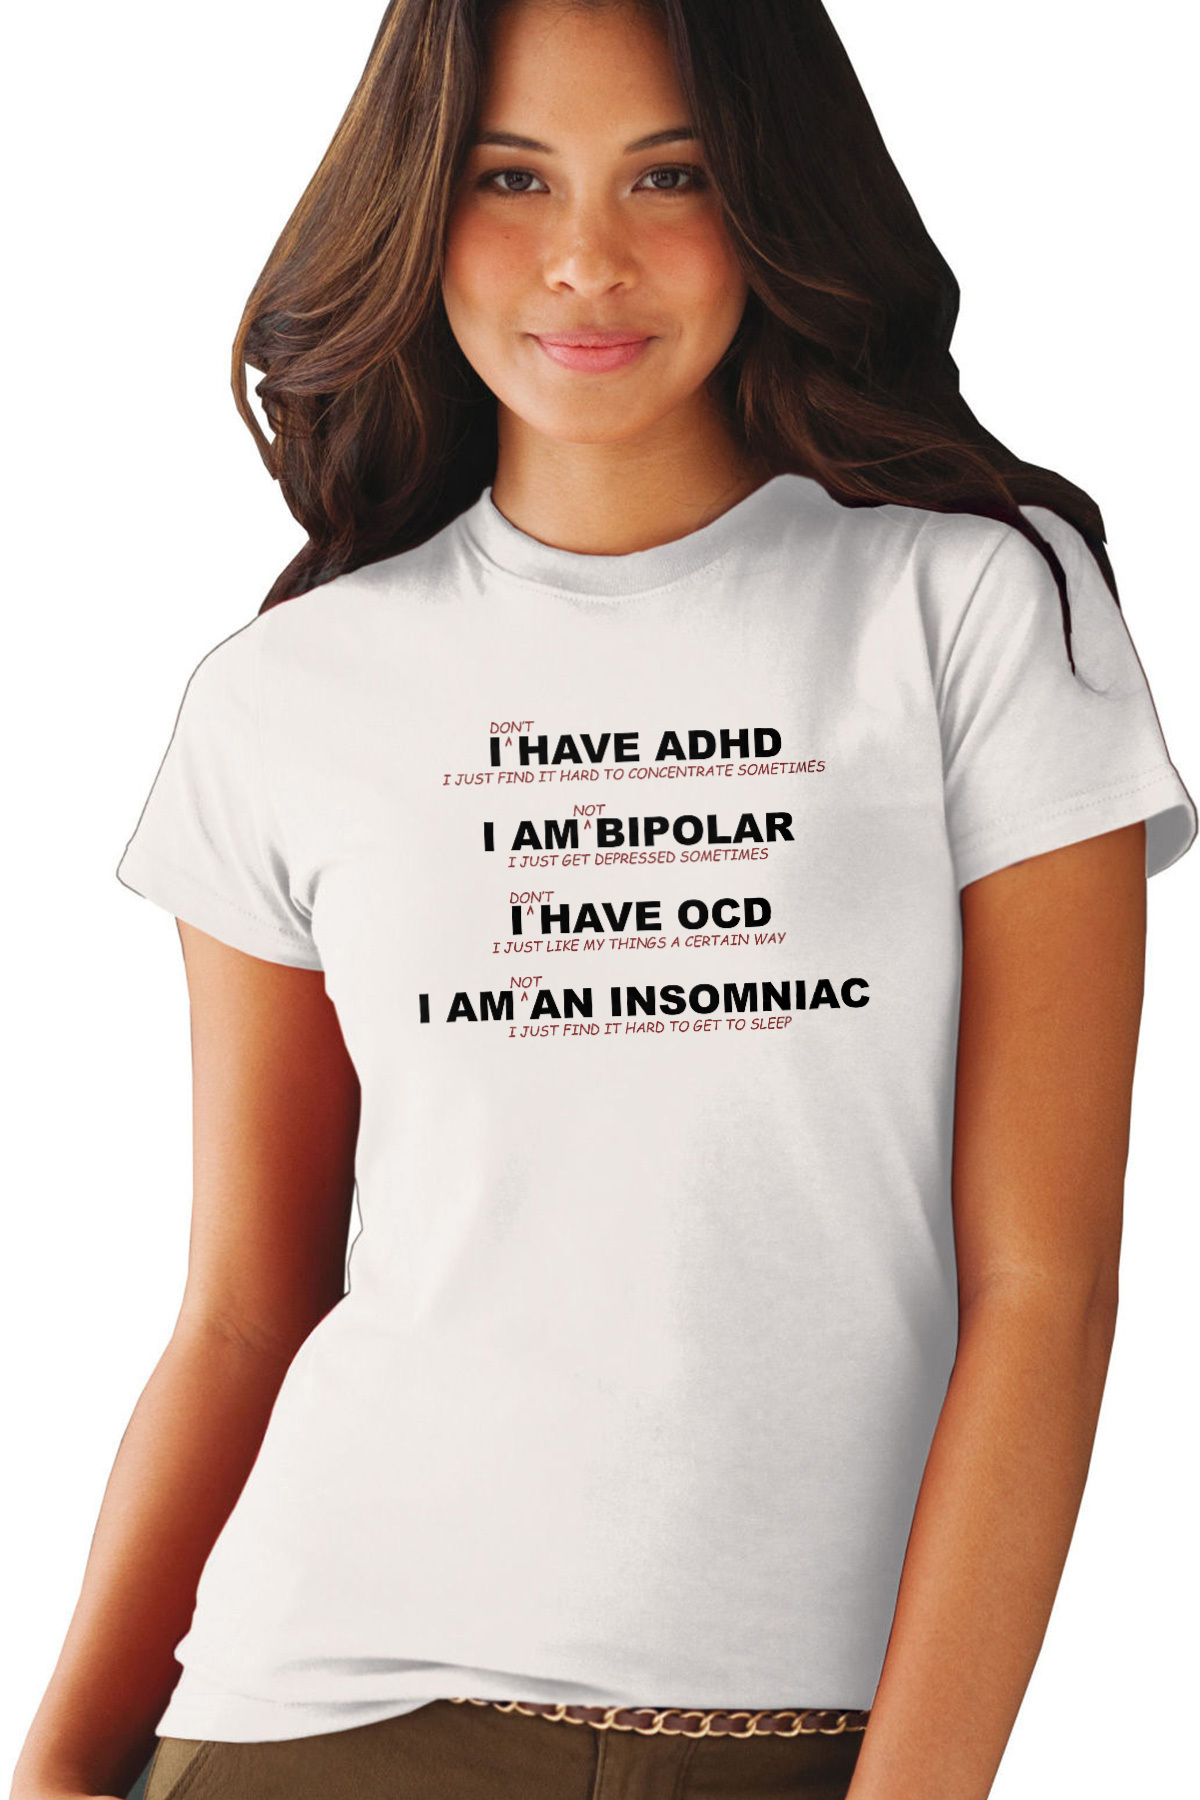 54abb078e I don't have ADHD - I just find it hard to concentrate sometimes - funny t- shirt